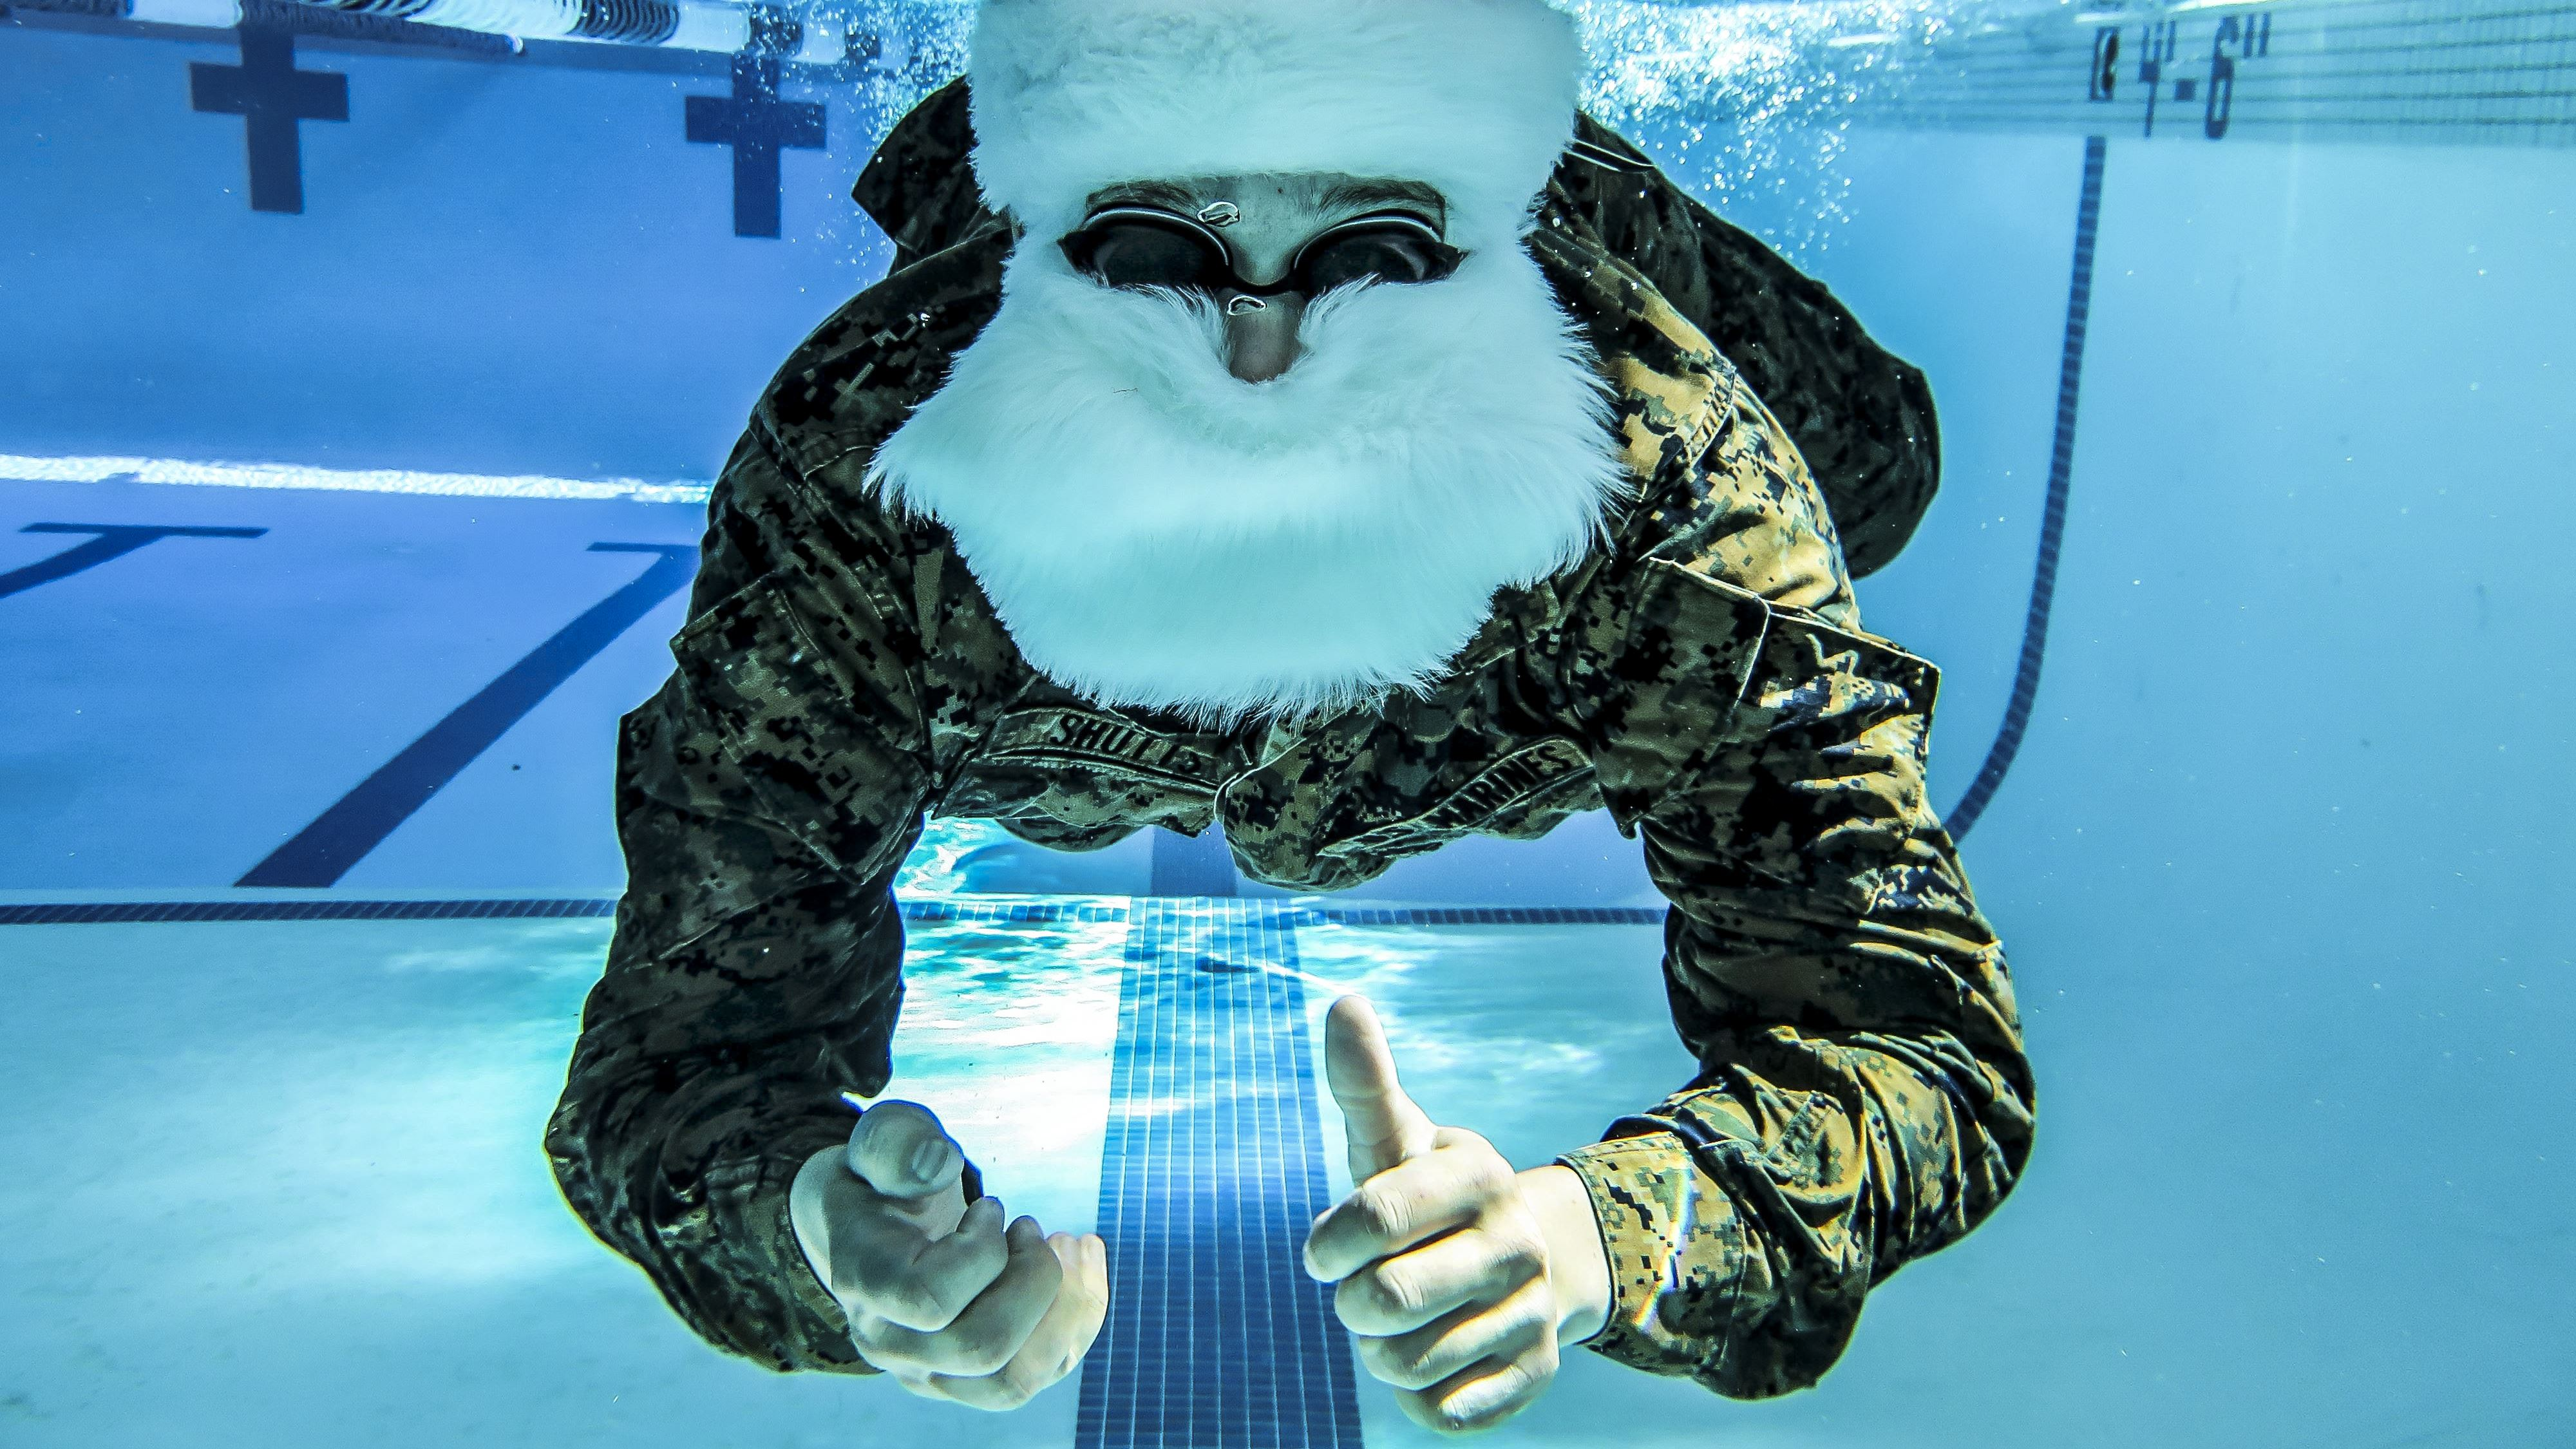 Santa Claus, commanding officer of Holiday Cheer, Northpolecom, conducts basic swim qualifications at Camp Pendleton, Calif., Dec. 19, 2017. Claus must pass the Marine qualifications every two years. Marine Corps photo by Gunnery Sgt. Evan Ahlin